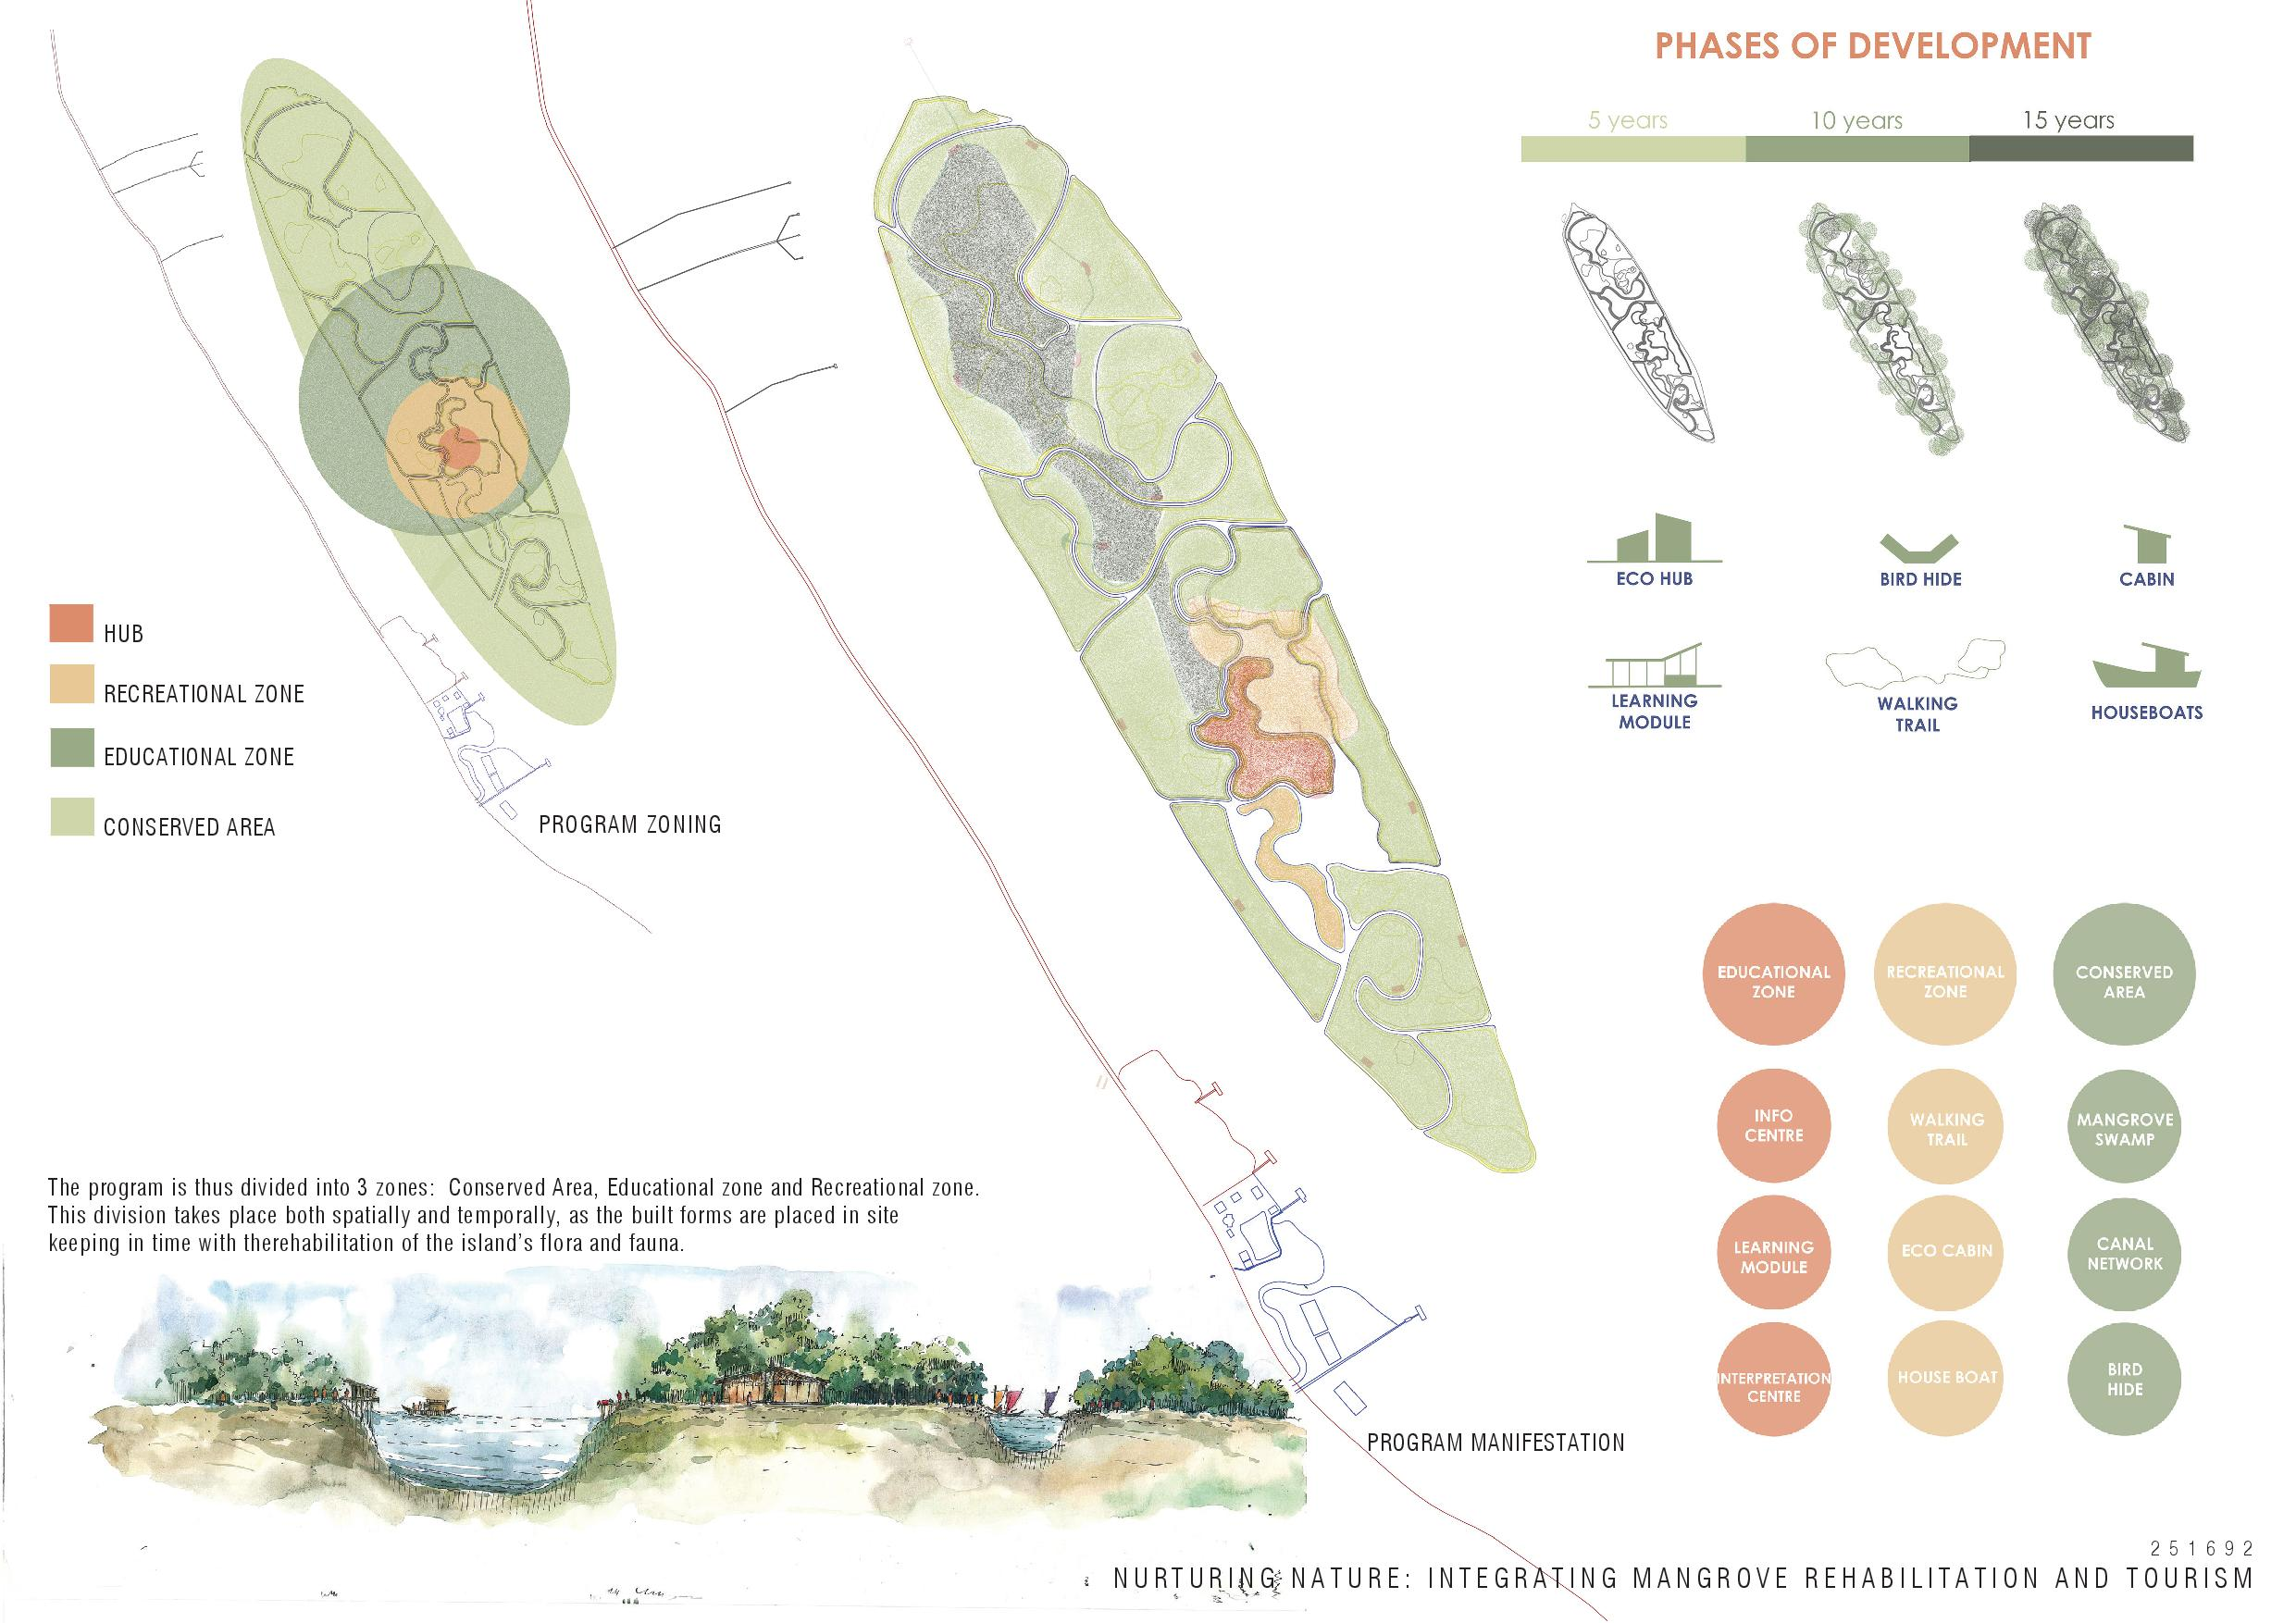 3. 251692_ NURTURING NATURE INTEGRATING MANGROVE REHABILITATION AND TOURISM -page-003